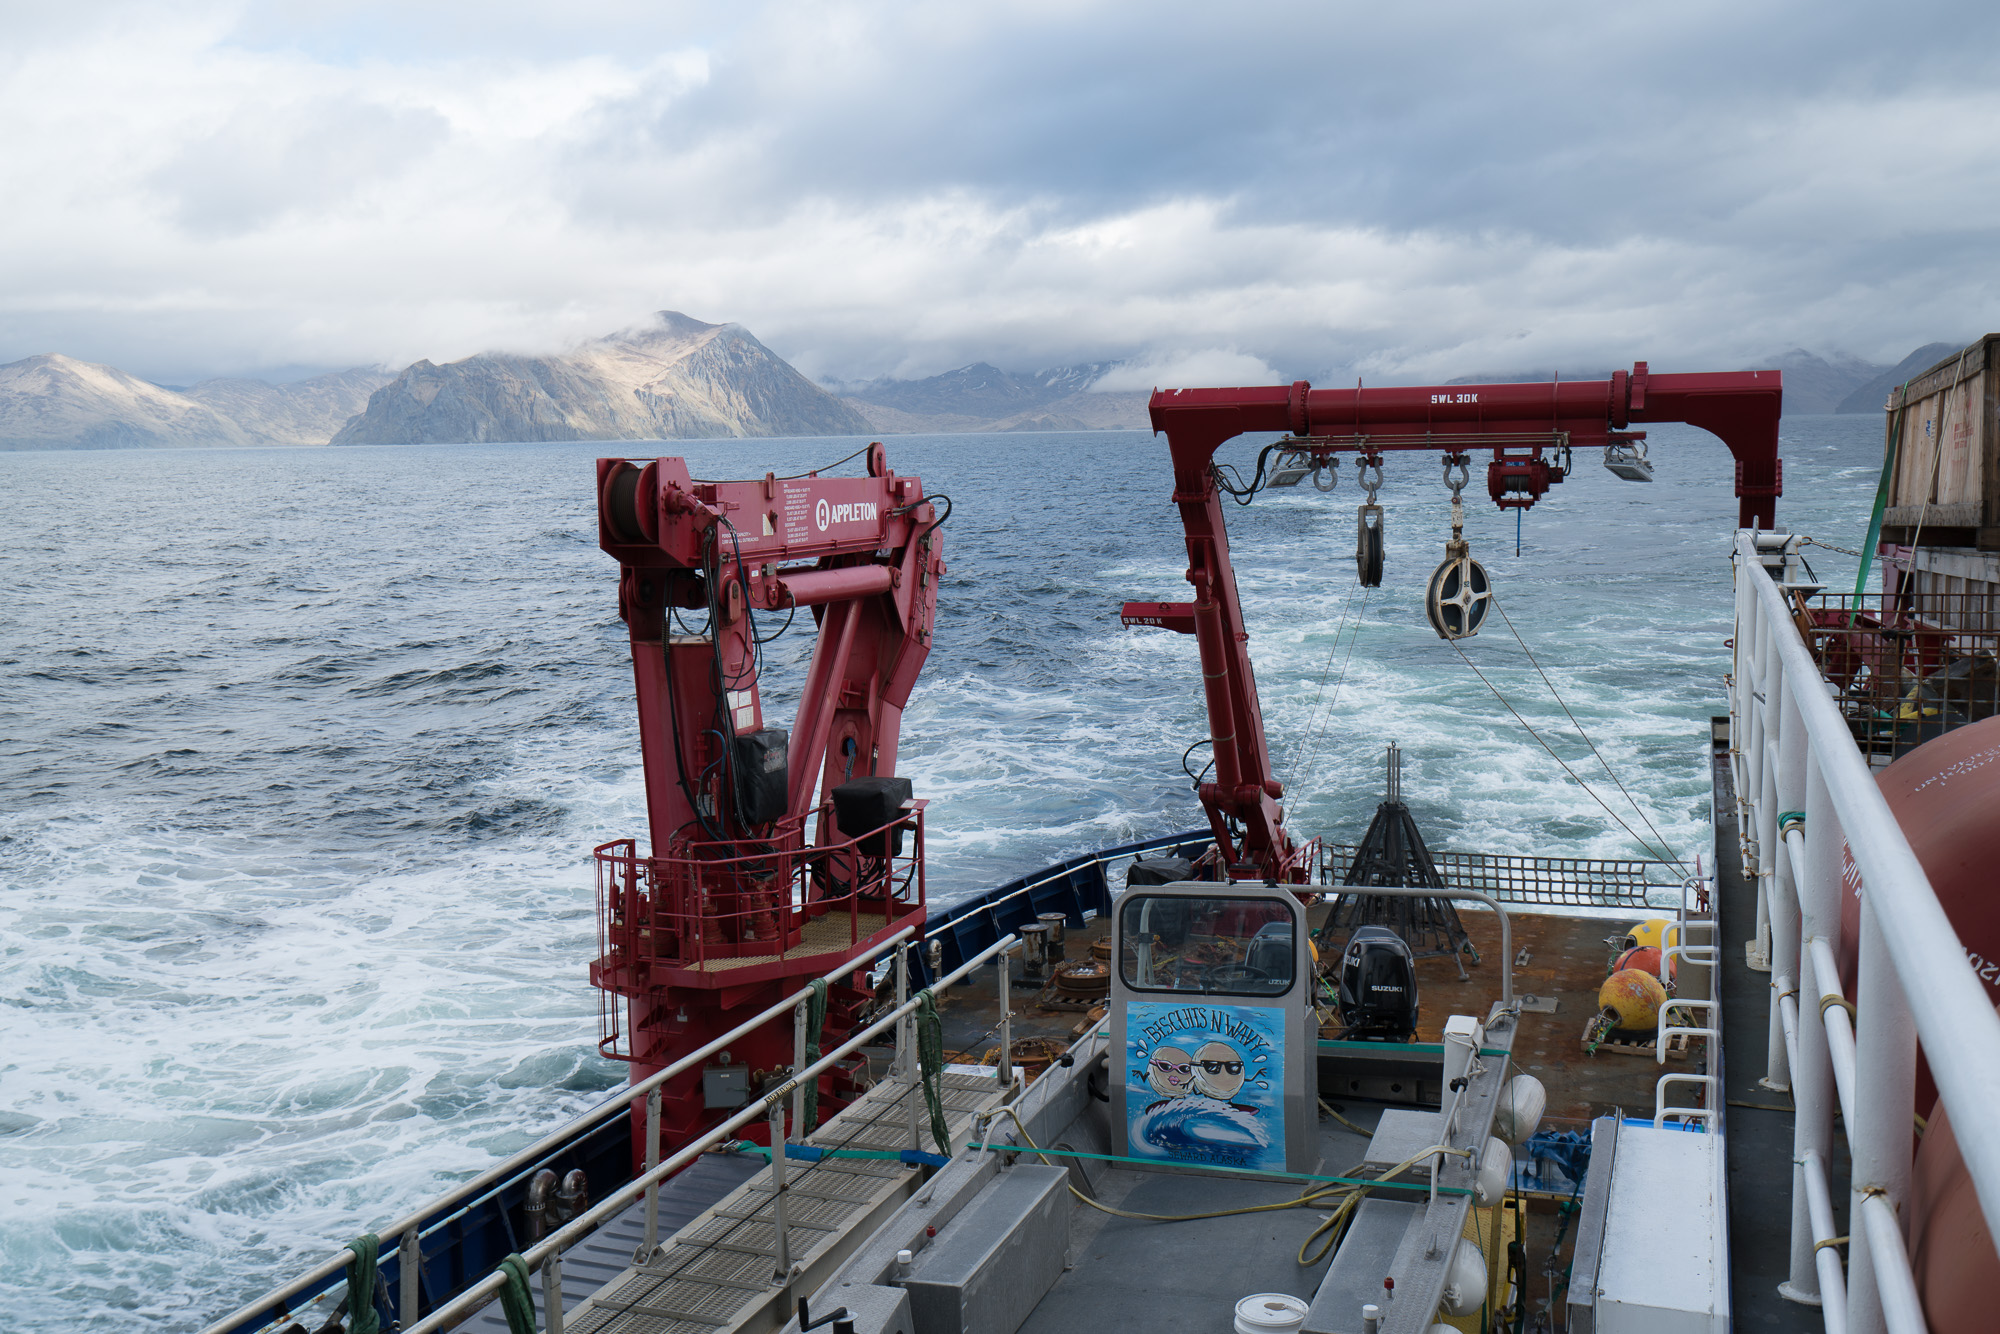 Heading north out of Dutch Harbor. Photo credit: Andrew McDonnell